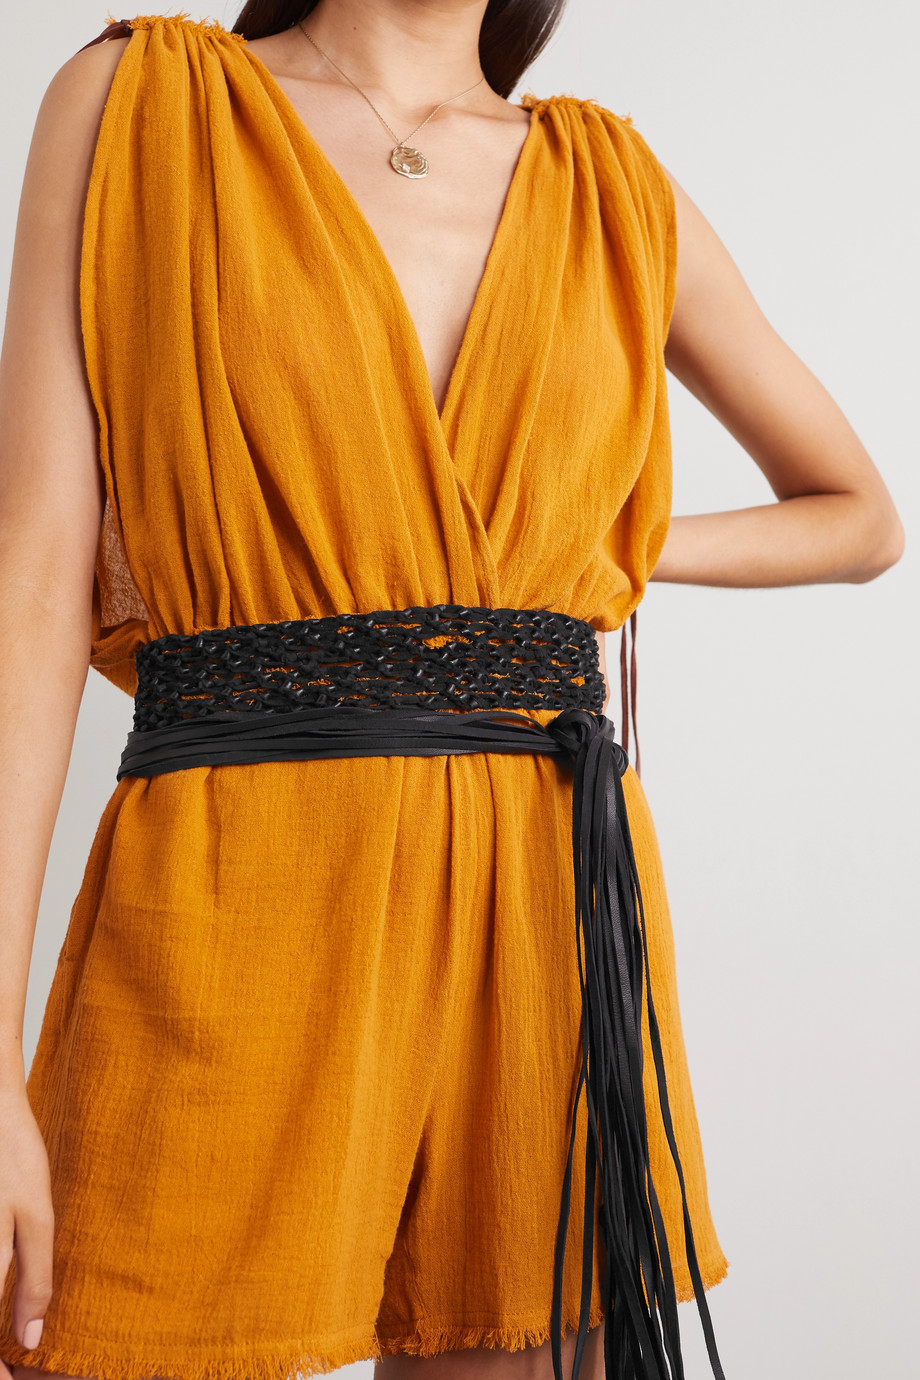 Caravana + NET SUSTAIN Venus fringed woven leather waist belt